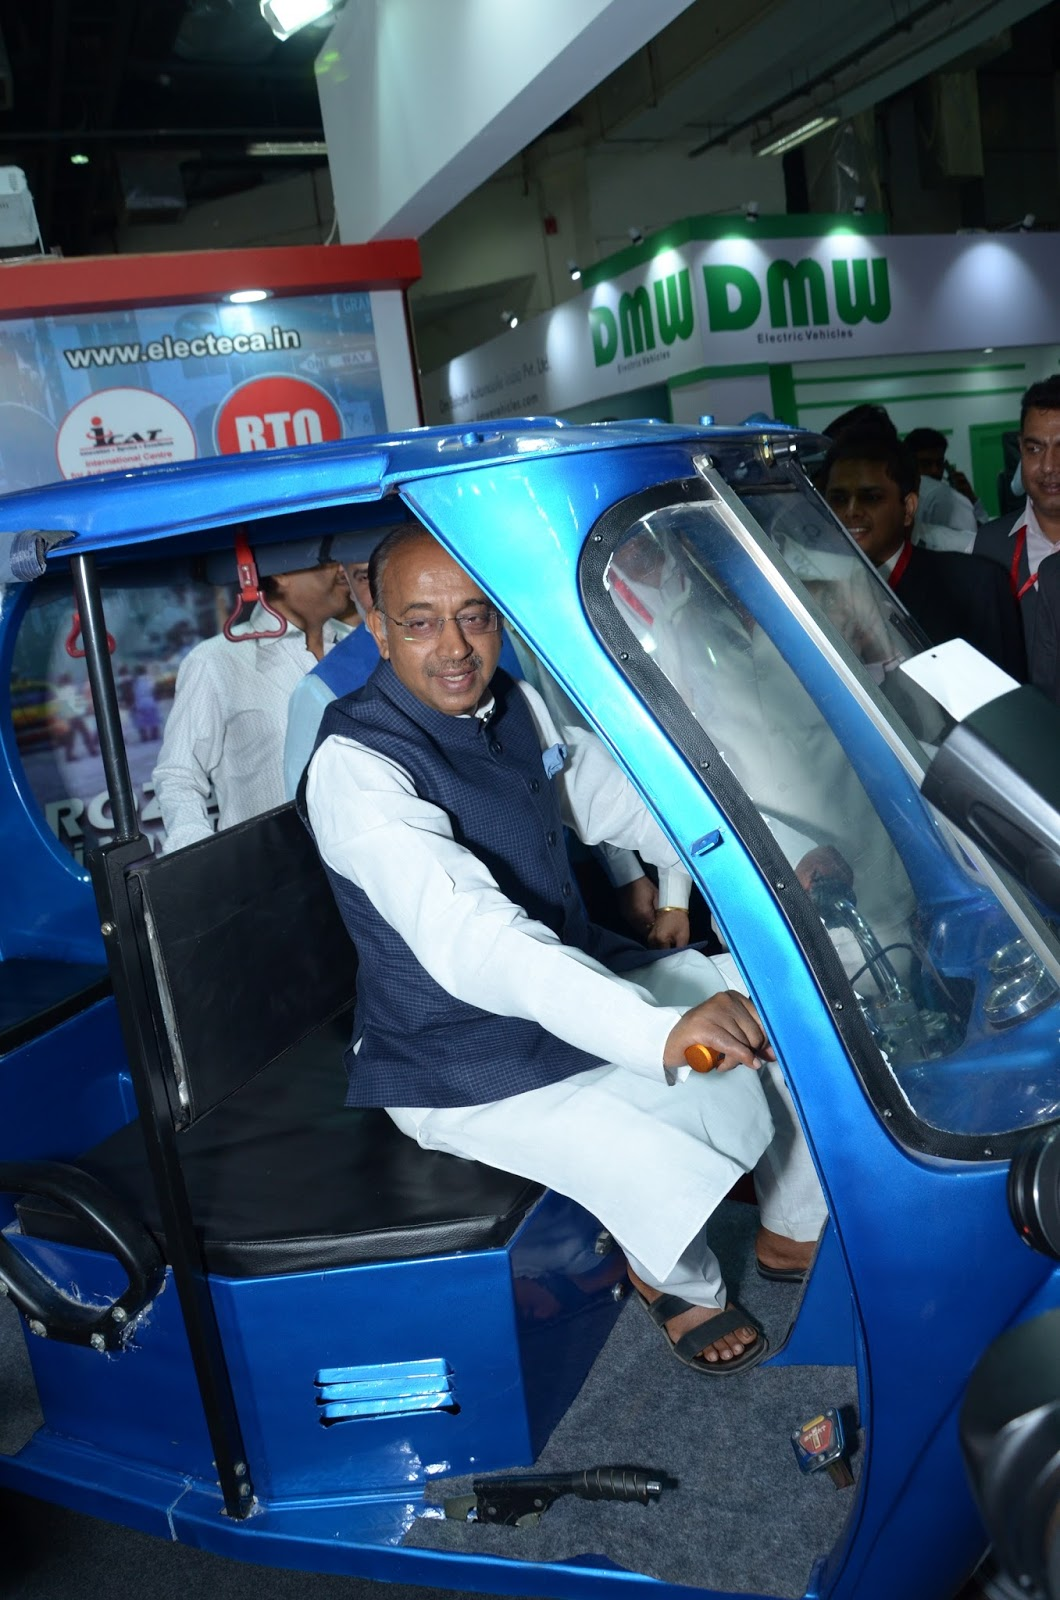 india e vehicle show bvtech expo 2017 received excellent response showcased eco friendly electric vehicle segment